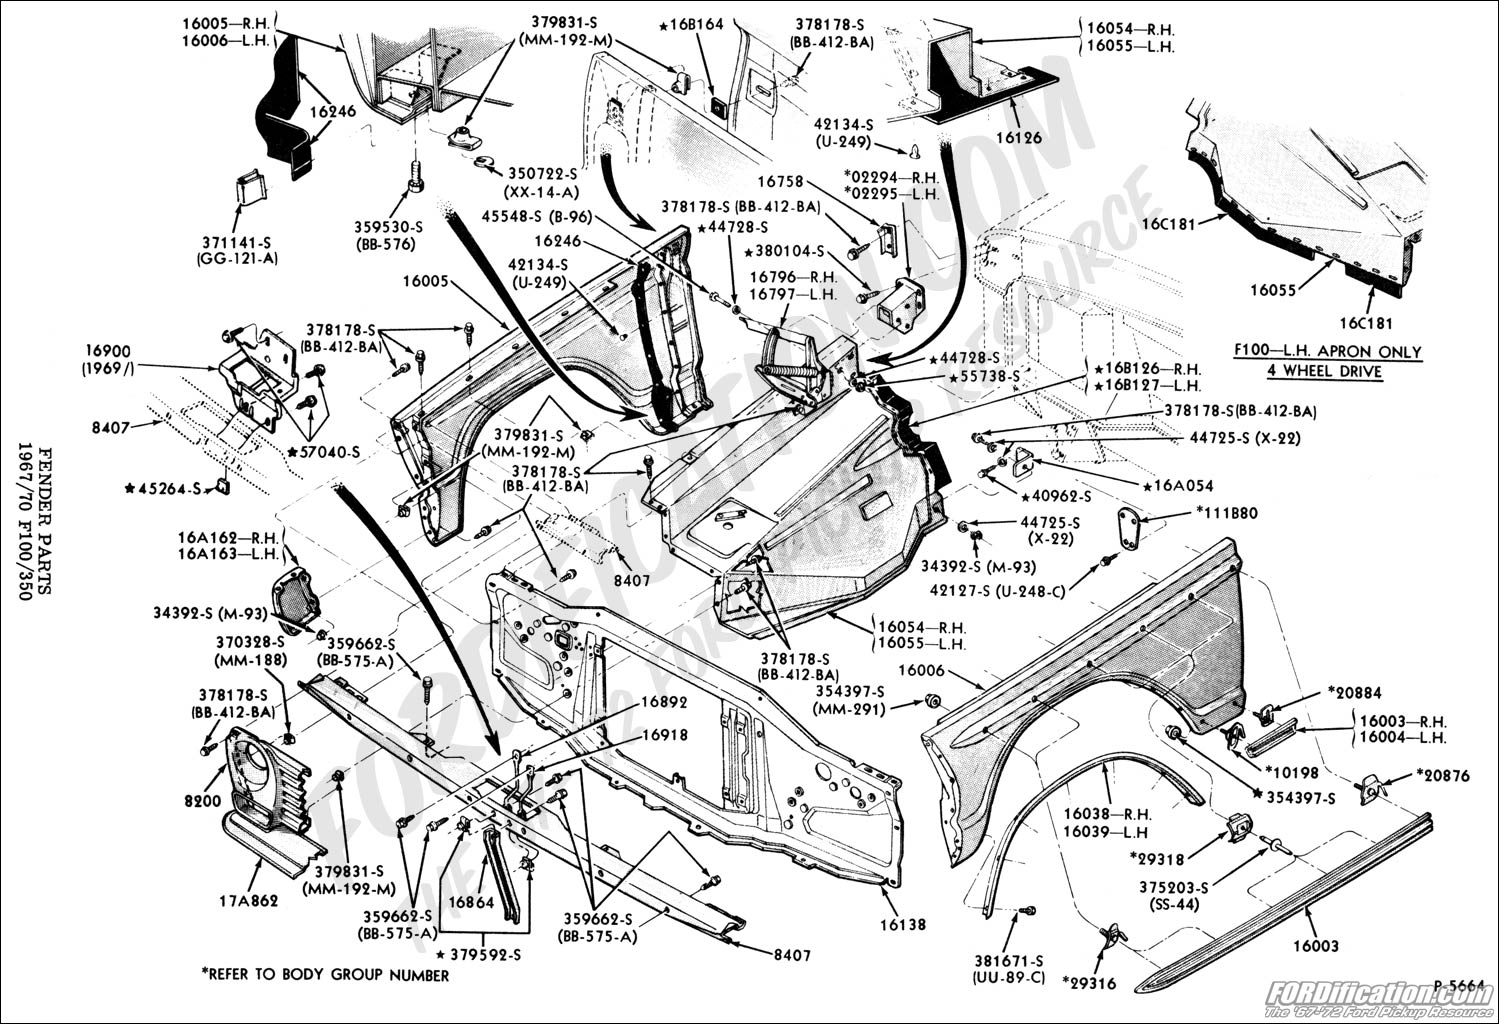 Exploded View Results likewise Early Windshield Wiper Motor Rebuild moreover Mopar Electronic Ignition Wiring Diagram besides Vw Beetle Fuse Box Diagram 1969 also Gm Parts Catalog Brakes With Pictures. on 1974 chevy c10 wiring schematics